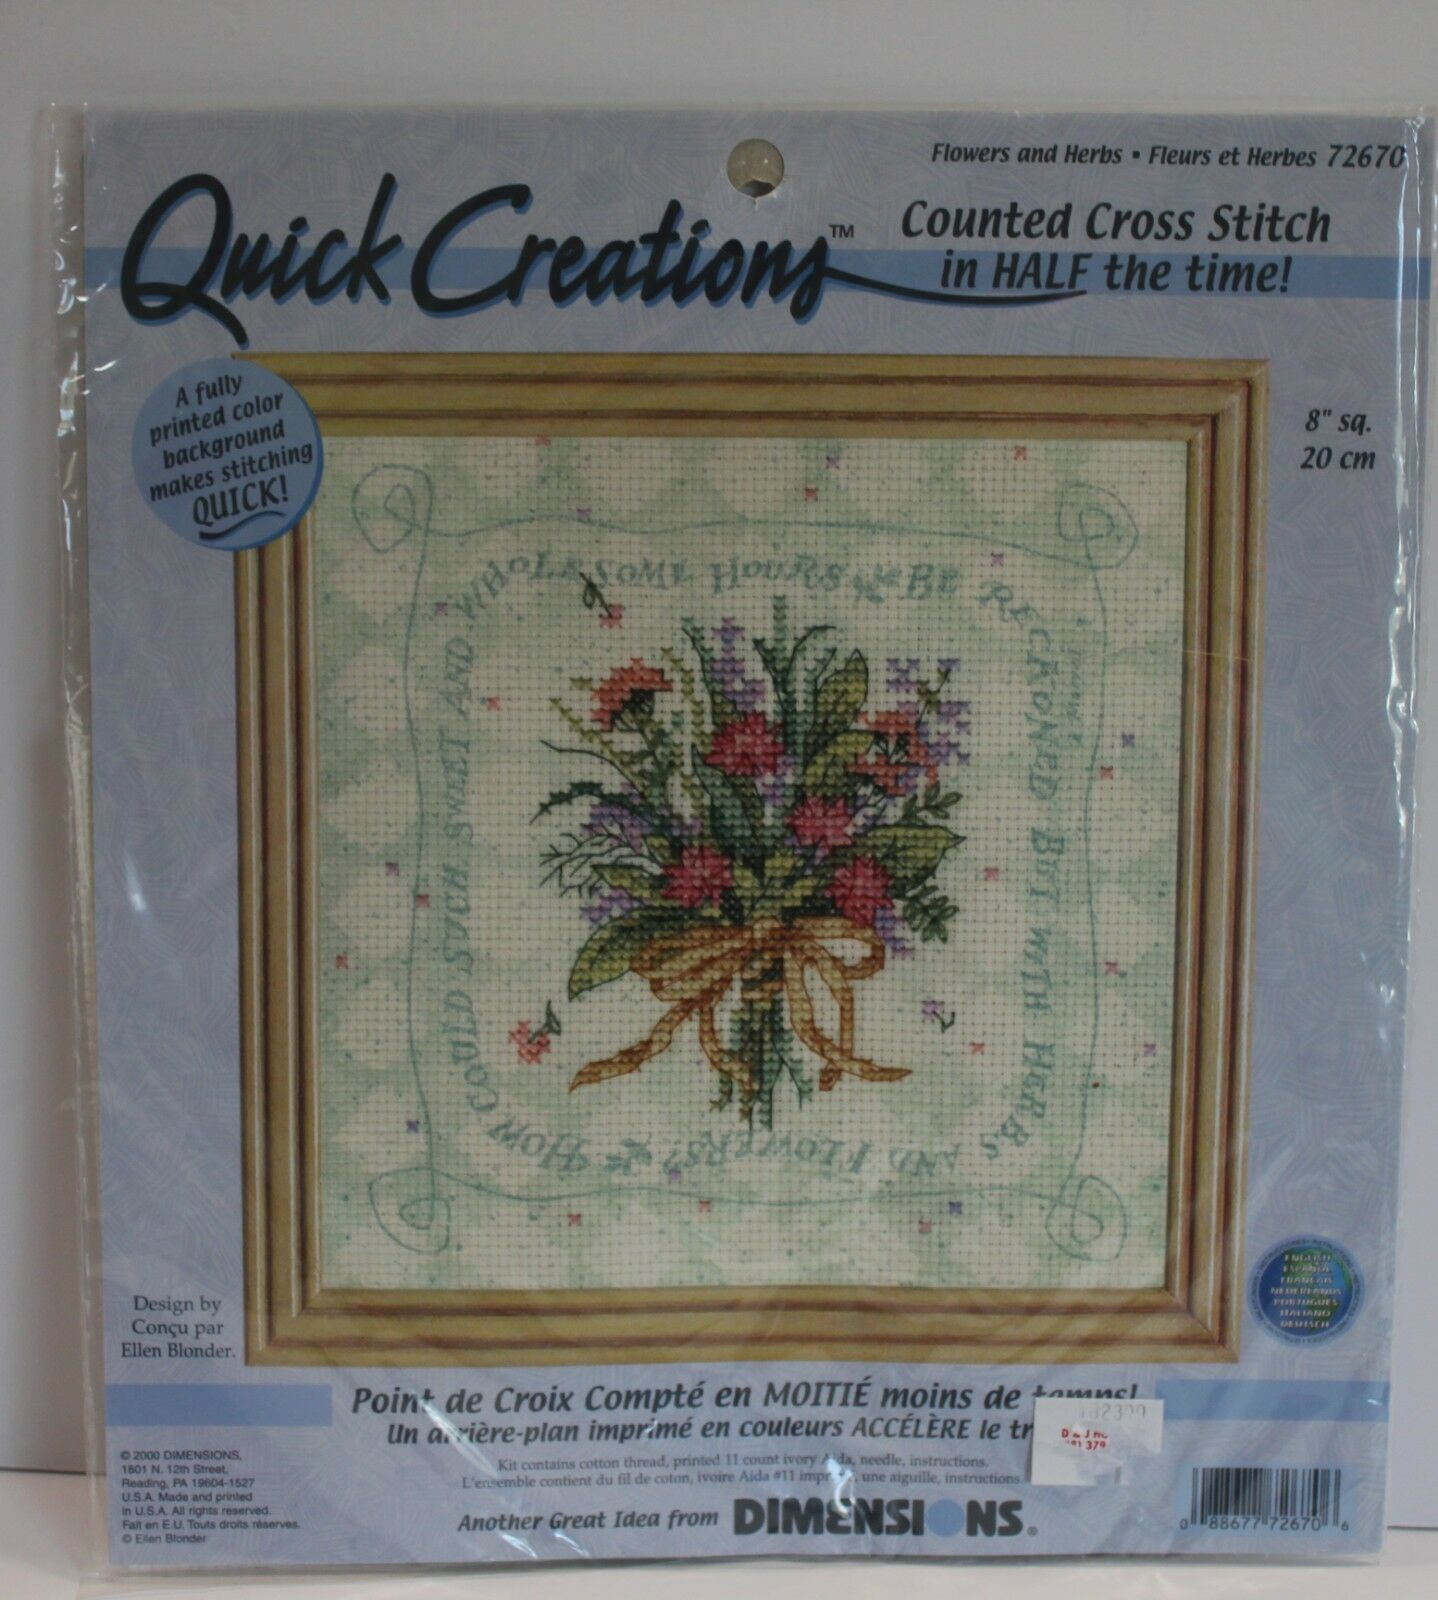 Dimensions Flowers and Herbs Bouquet Counted Cross Stitch Kit - $11.69